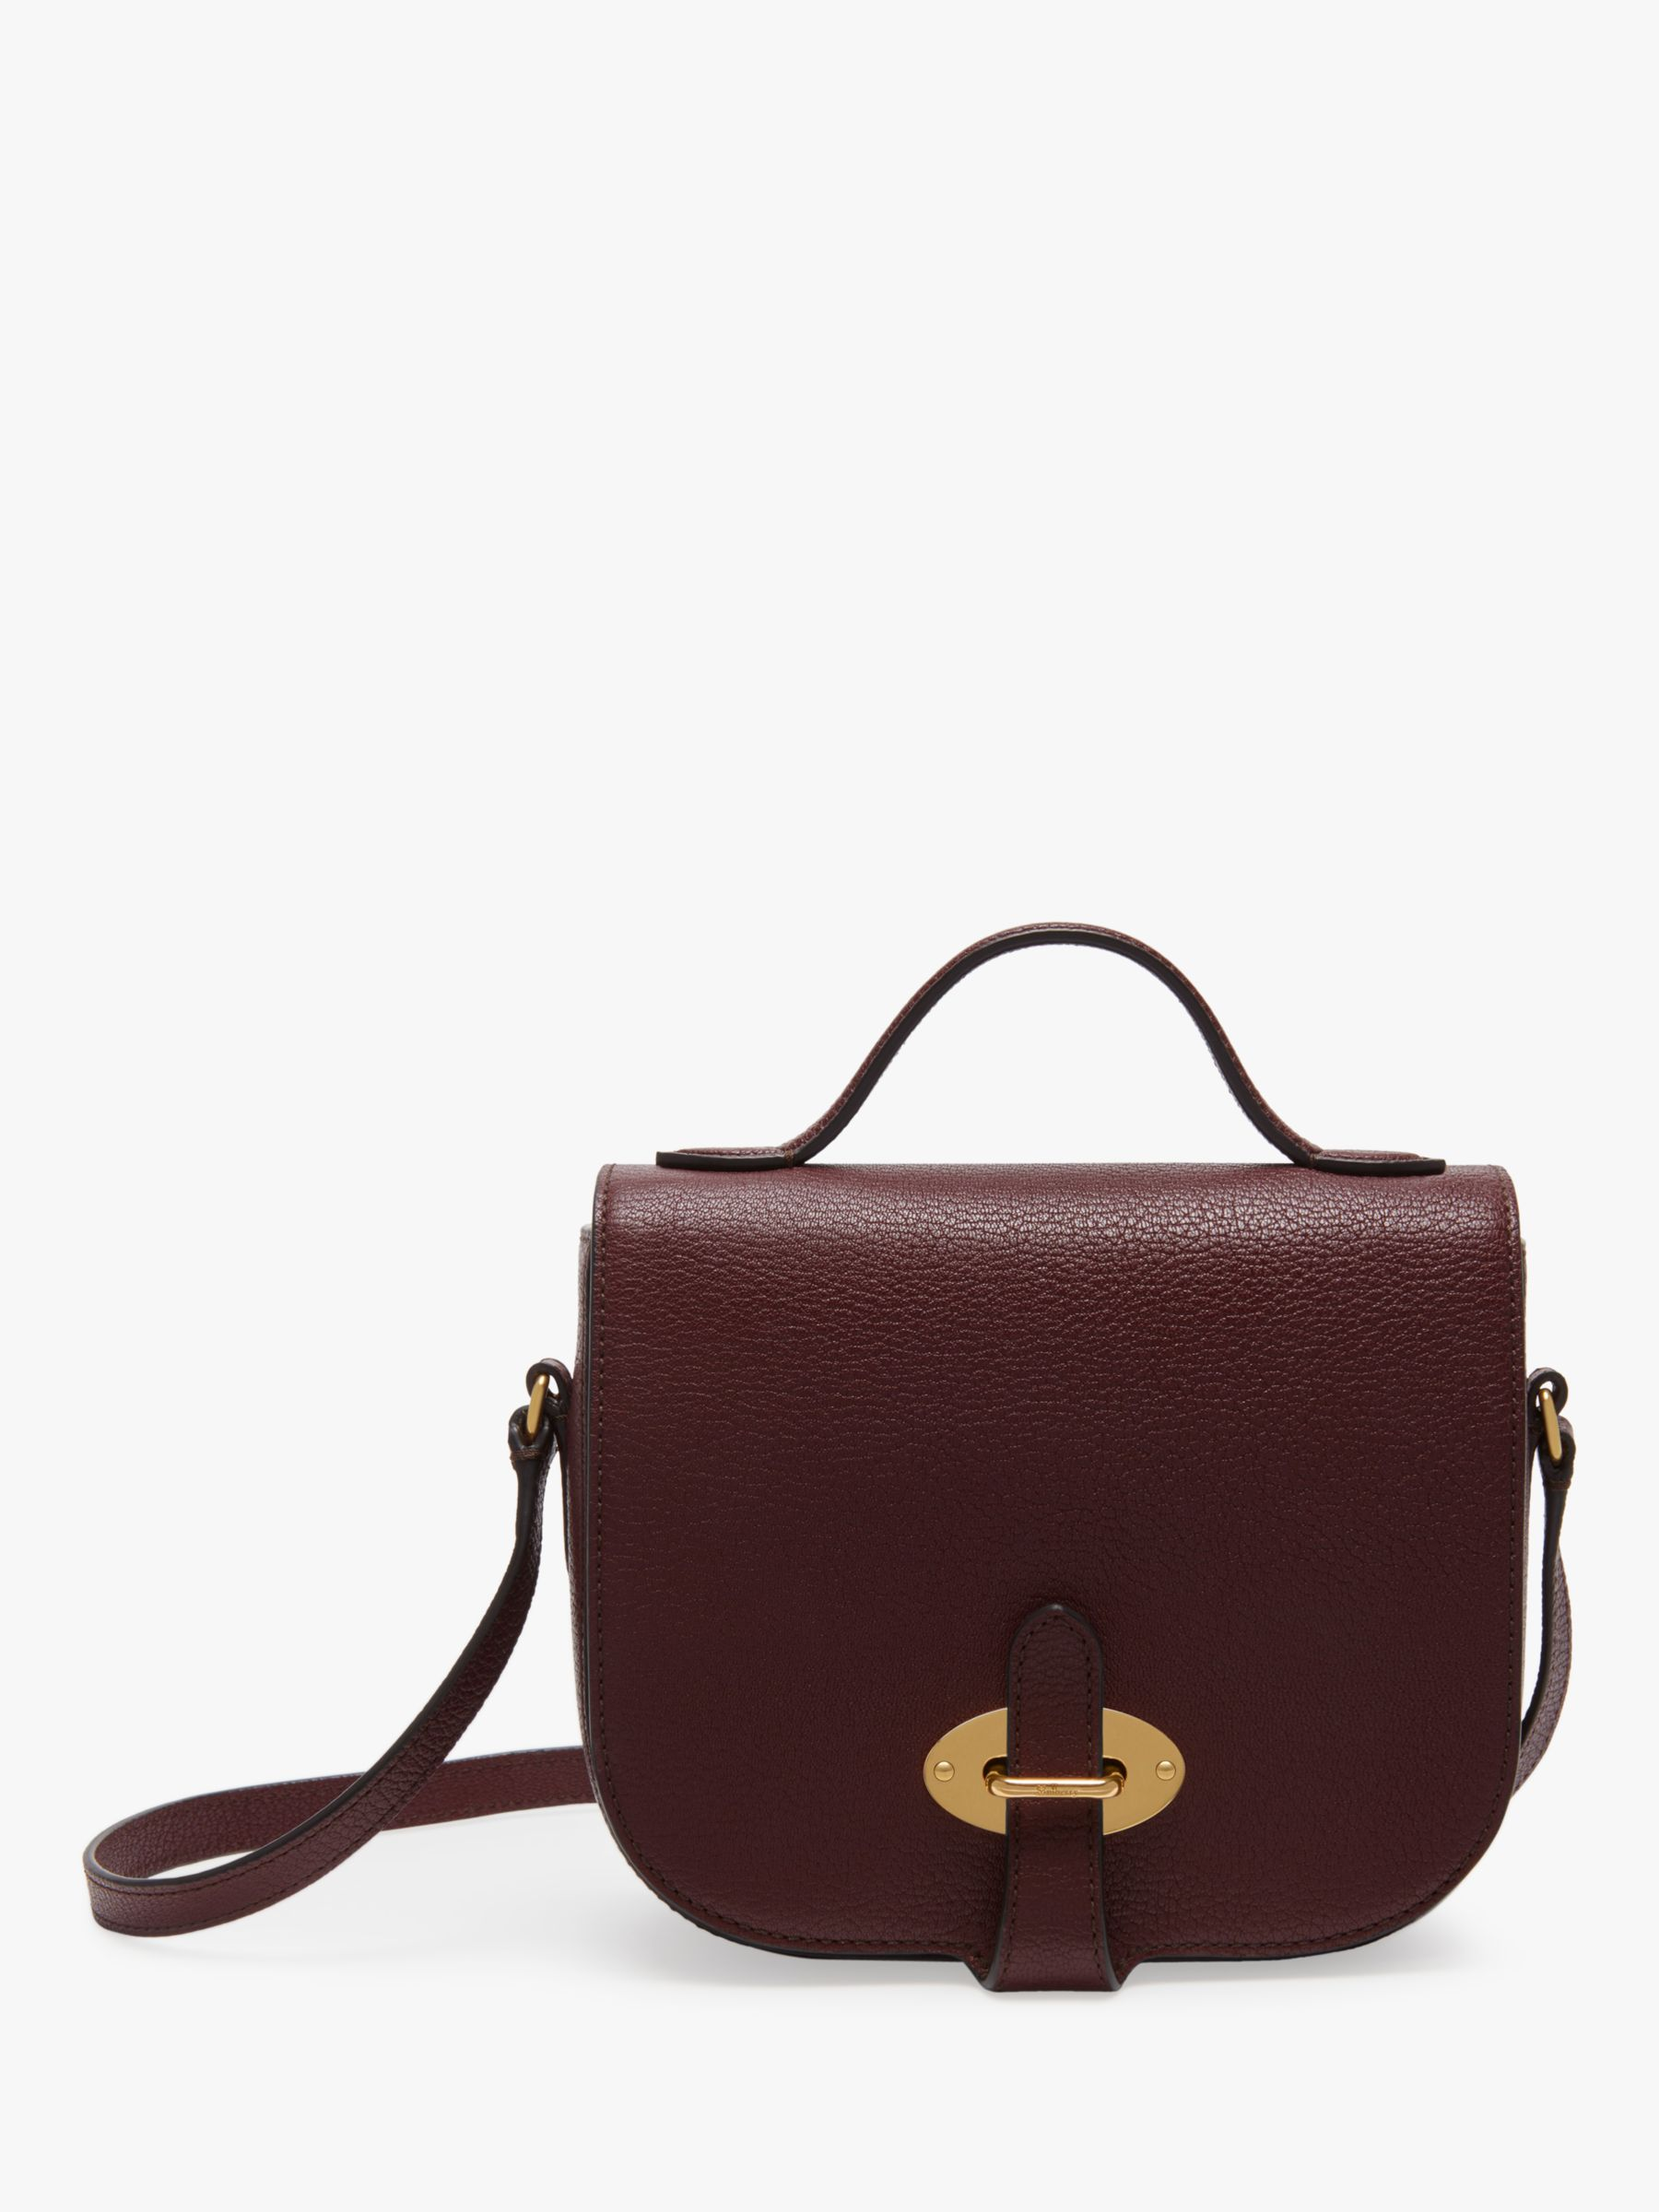 Mulberry Small Tenby Goat Textured Leather Satchel Bag, Burgundy at John  Lewis   Partners 60fe4f578d